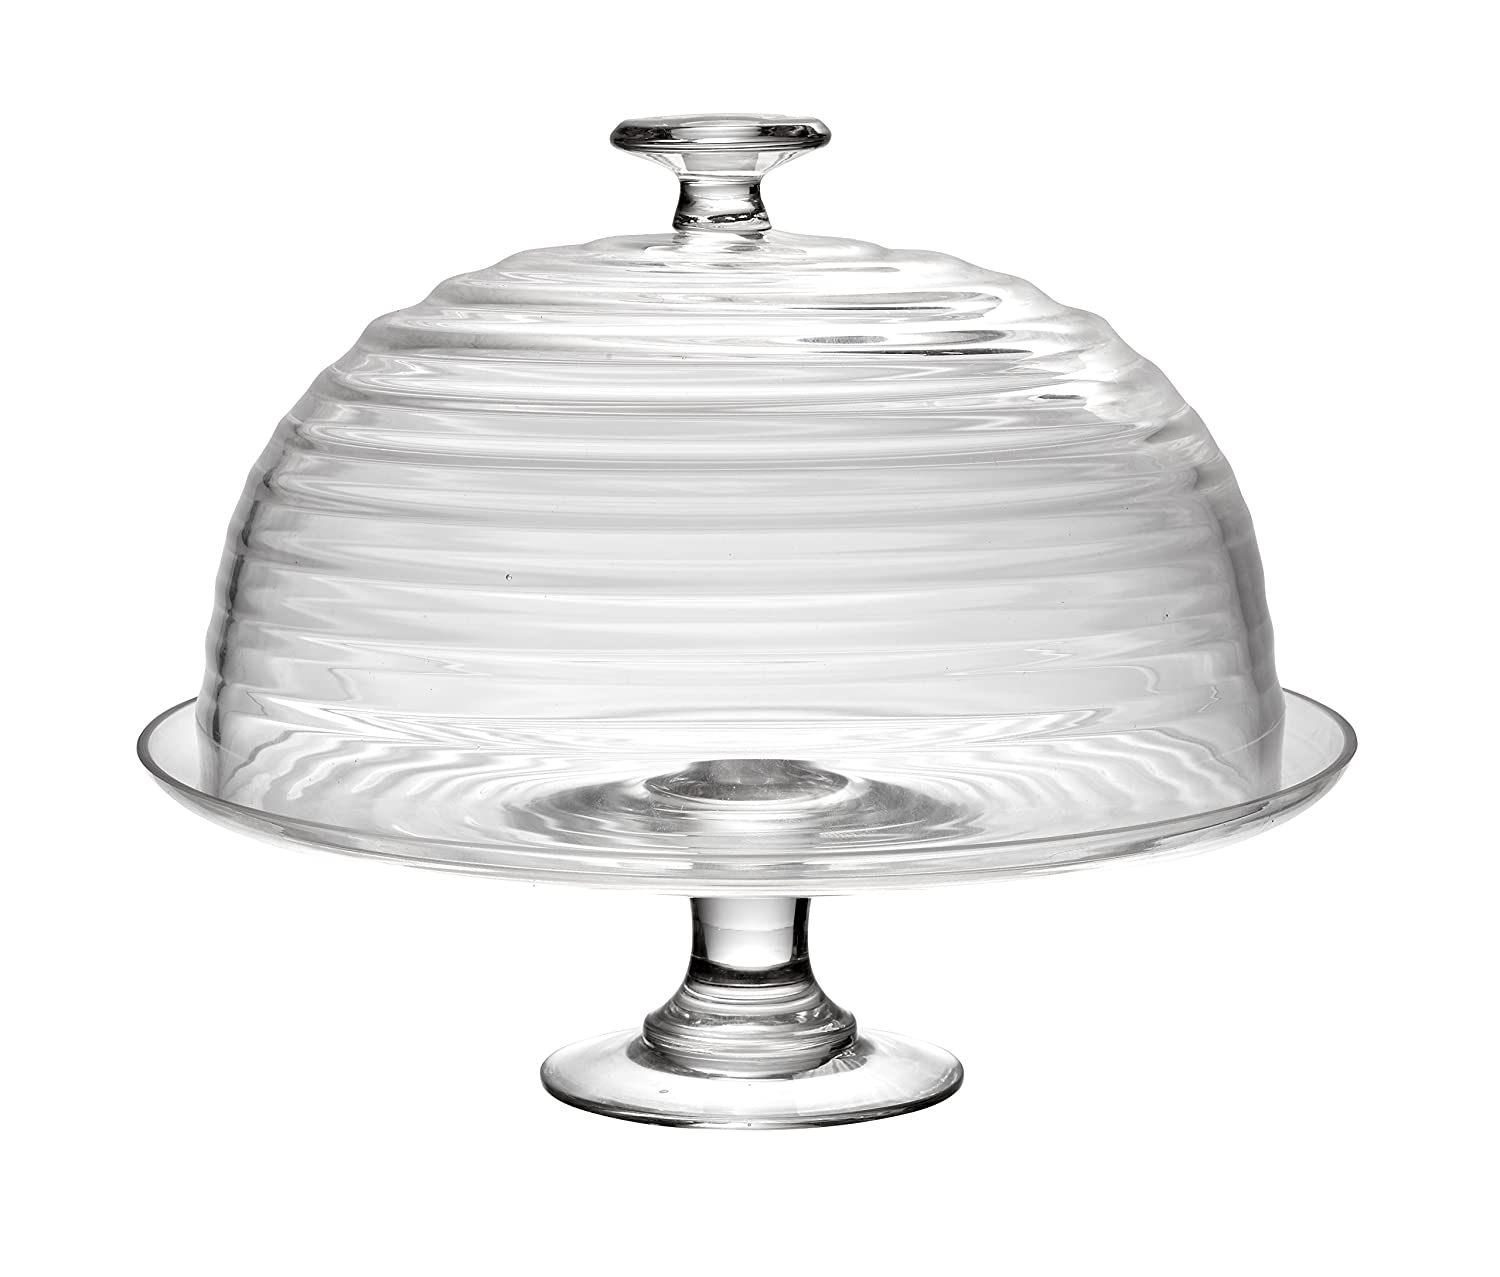 Sophie Conran Covered Cake Plate   B00UXNHWZK